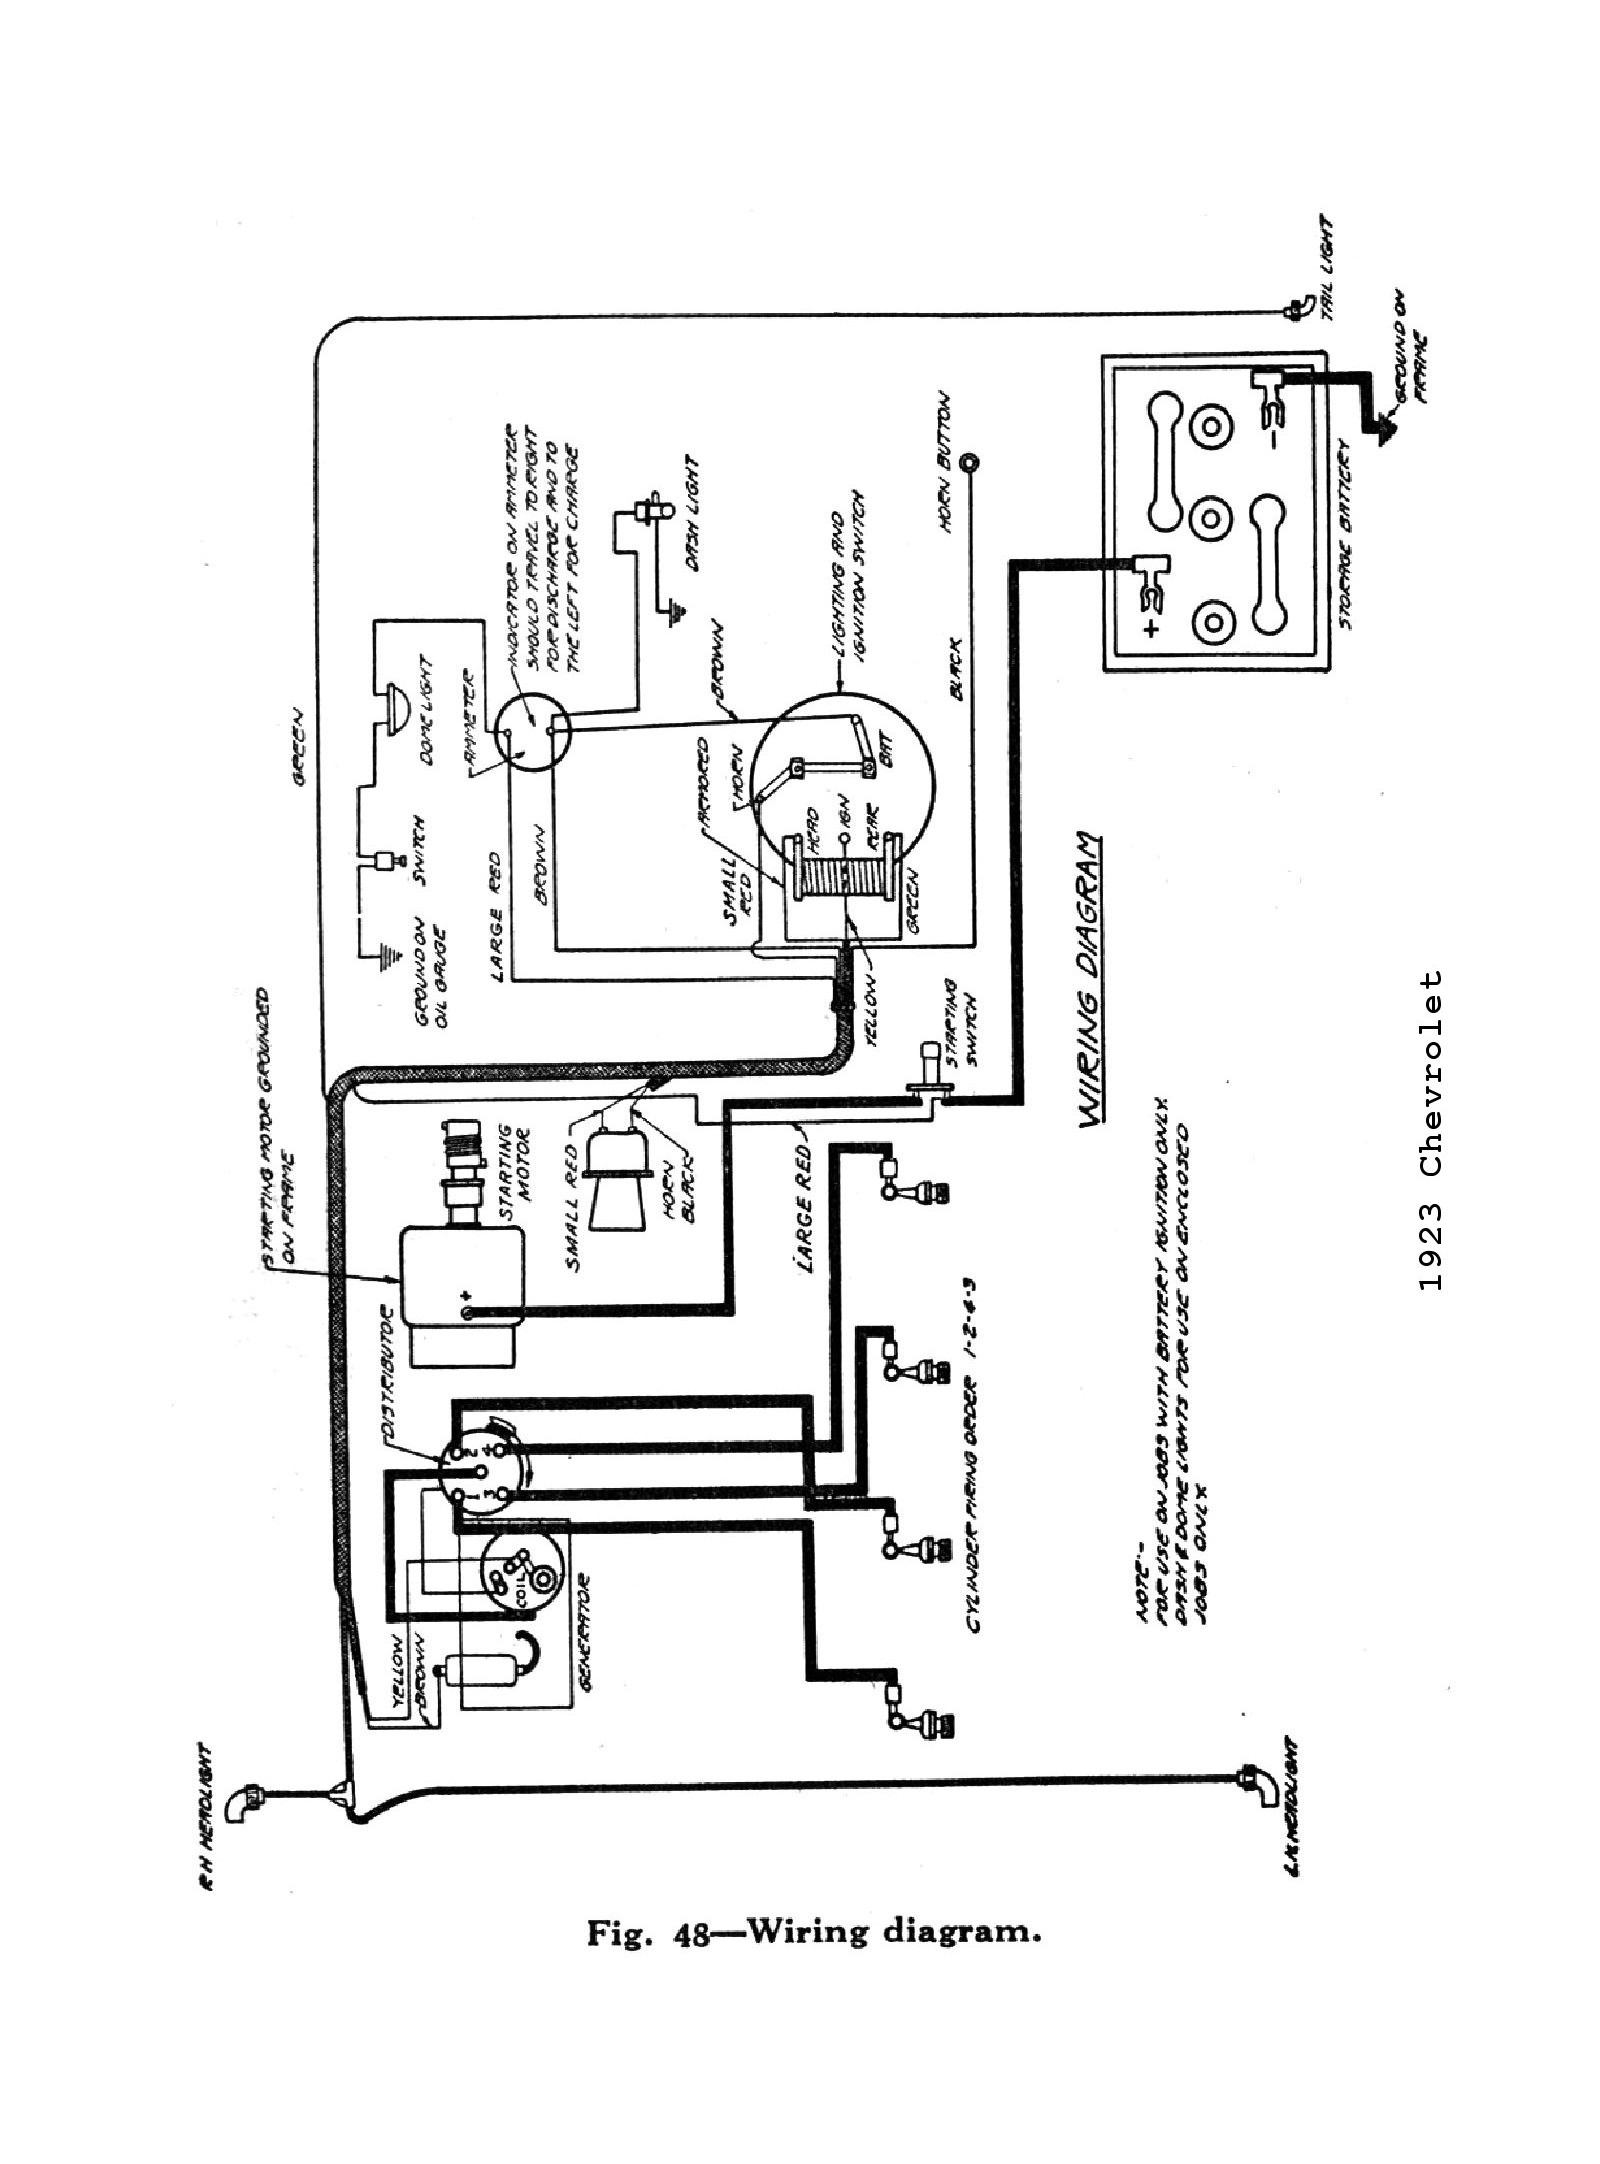 1961 Impala Dashboard Wiring Diagram | Schematic Diagram on 1970 impala wiring harness, 1964 impala ignition wiring diagram, 2008 impala wiring harness, 1965 gto wiring harness, 1964 impala alternator wiring, 63 impala wiring harness, 1967 mustang wiring harness, 1961 impala wiring harness, 1969 impala wiring harness, 1964 impala dash harness, 1965 impala wiring harness, 1964 mustang wiring harness, 1964 gto wiring harness, 1966 impala wiring harness, 2000 impala wiring harness, 61 impala wiring harness, 1963 impala wiring harness, 1967 impala wiring harness, 2001 impala wiring harness, 64 impala wiring harness,